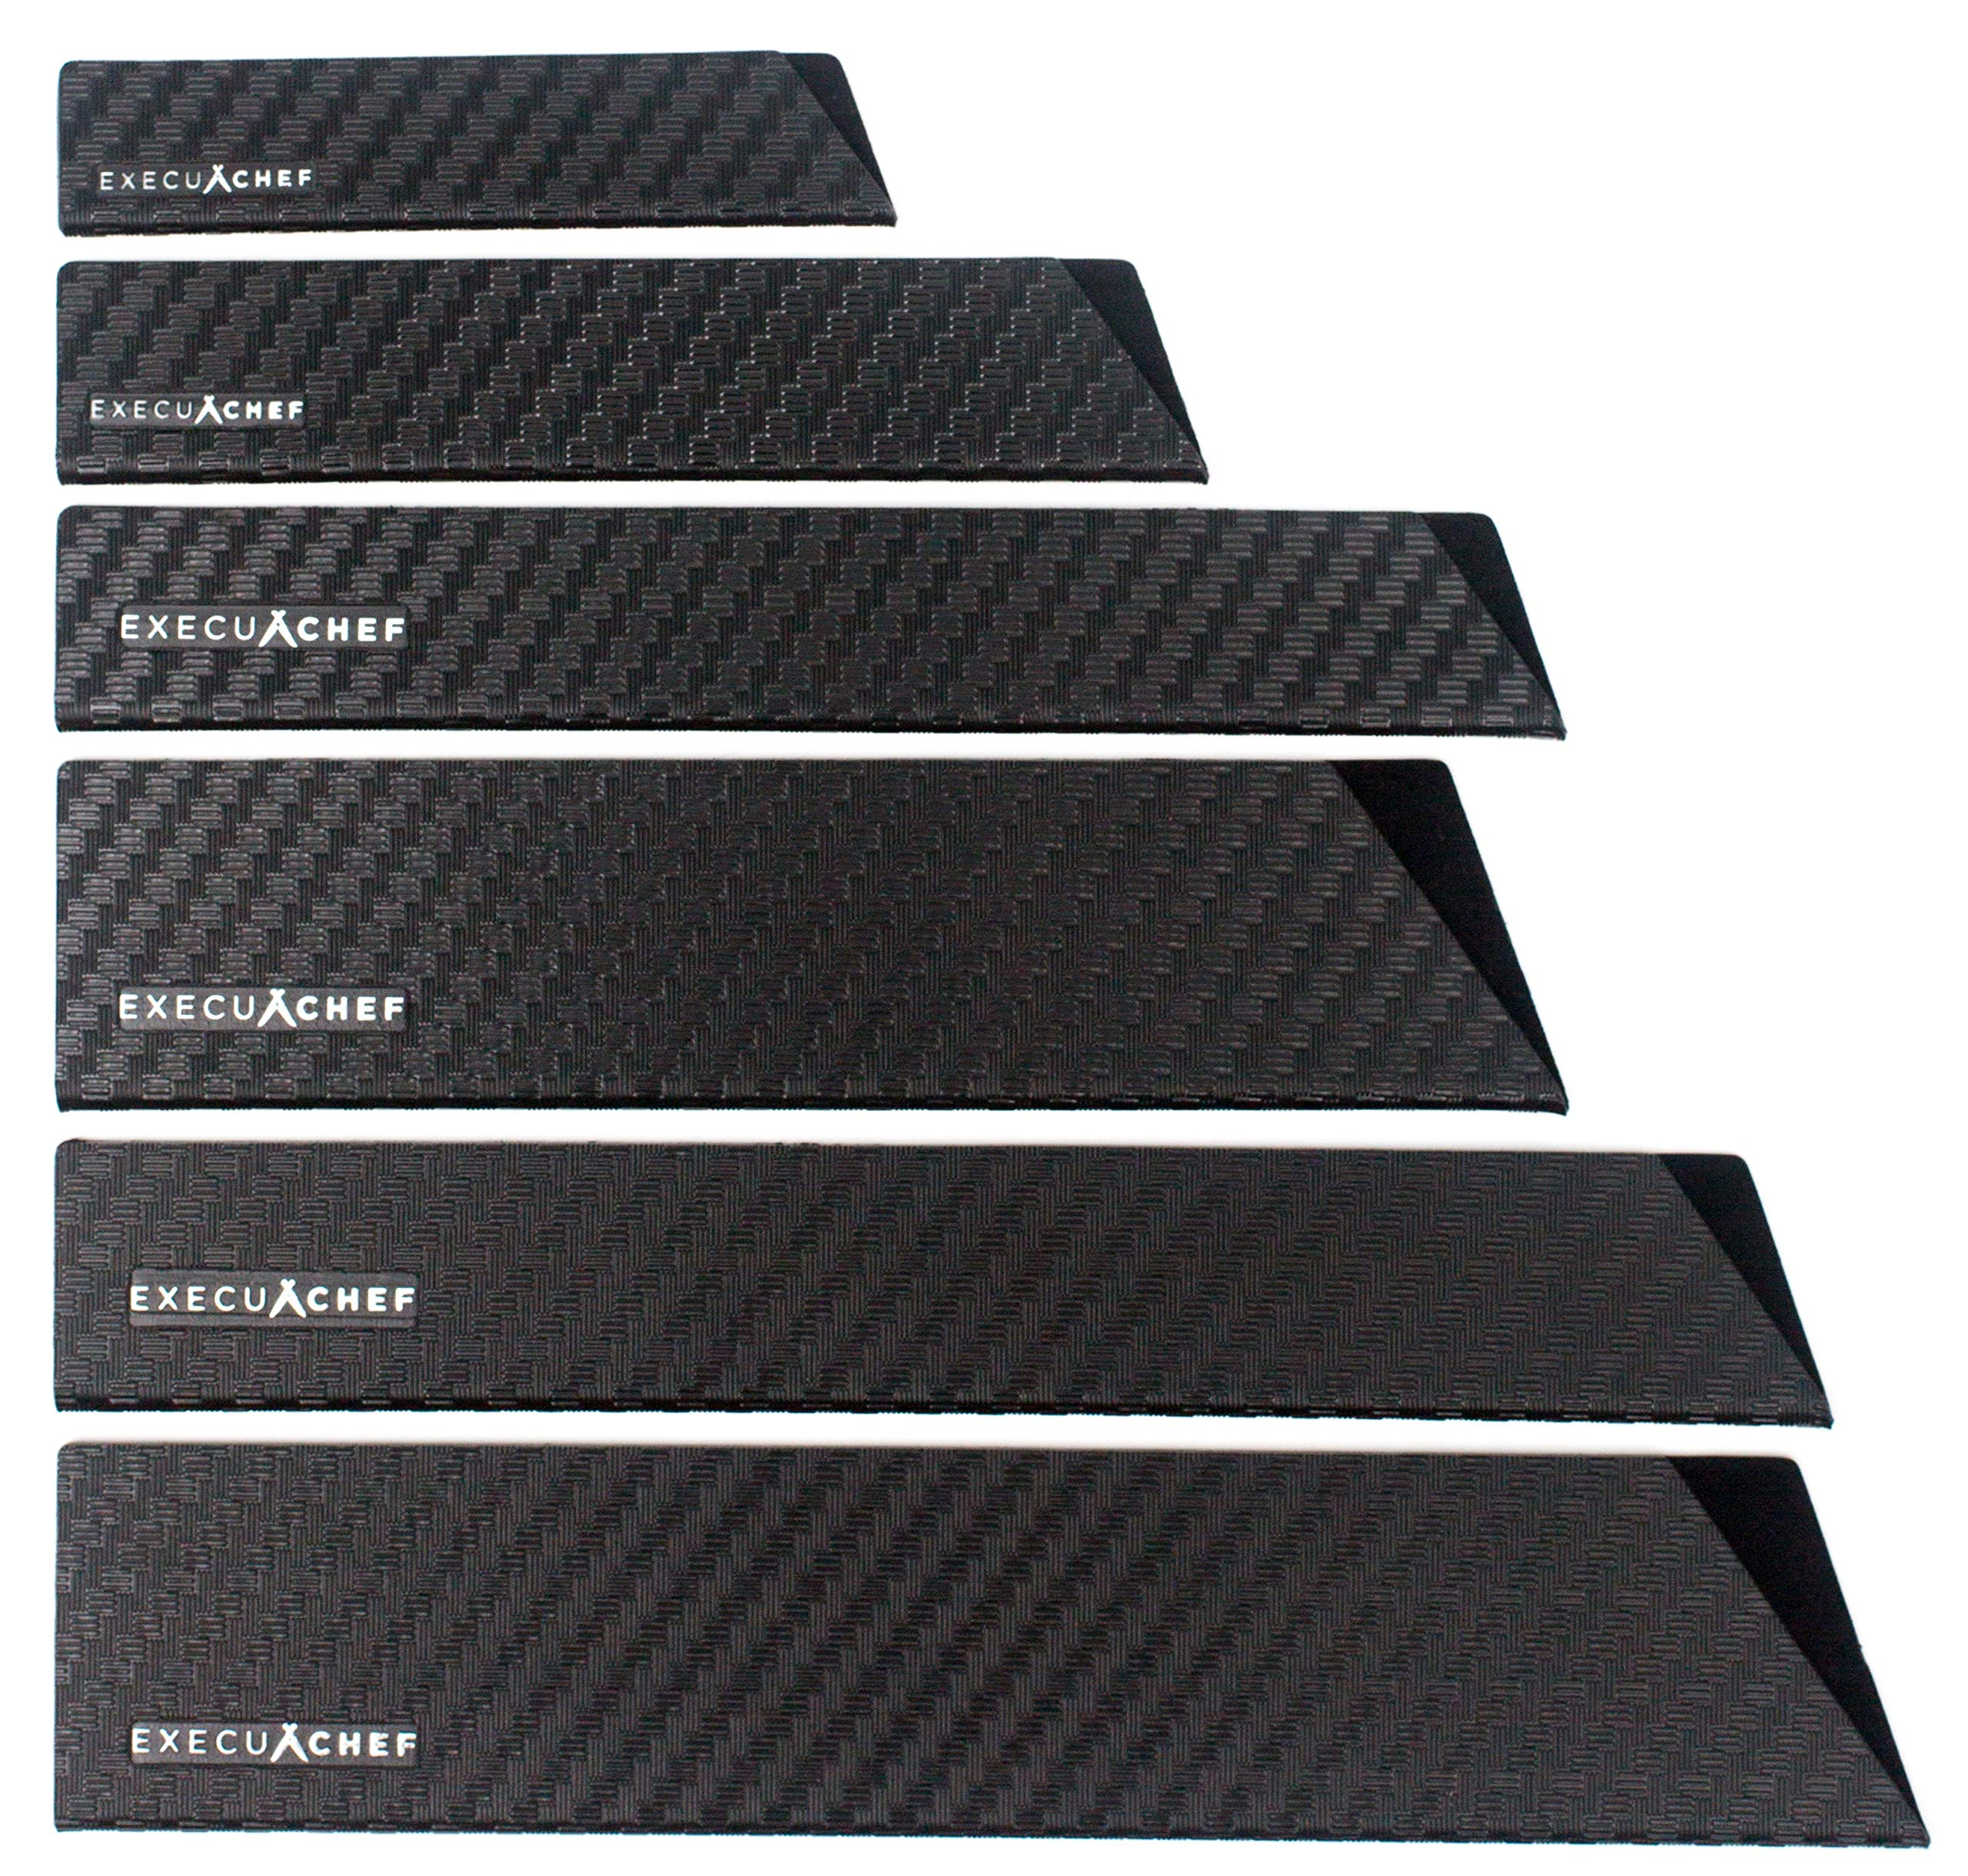 ExecuChef Professional Knife Edge Guards | 6 Piece Universal Blade Covers | Extra Strength, ABS Plastic and Felt Lining that's BPA-Free, Non-Toxic and Food Safe by ExecuChef